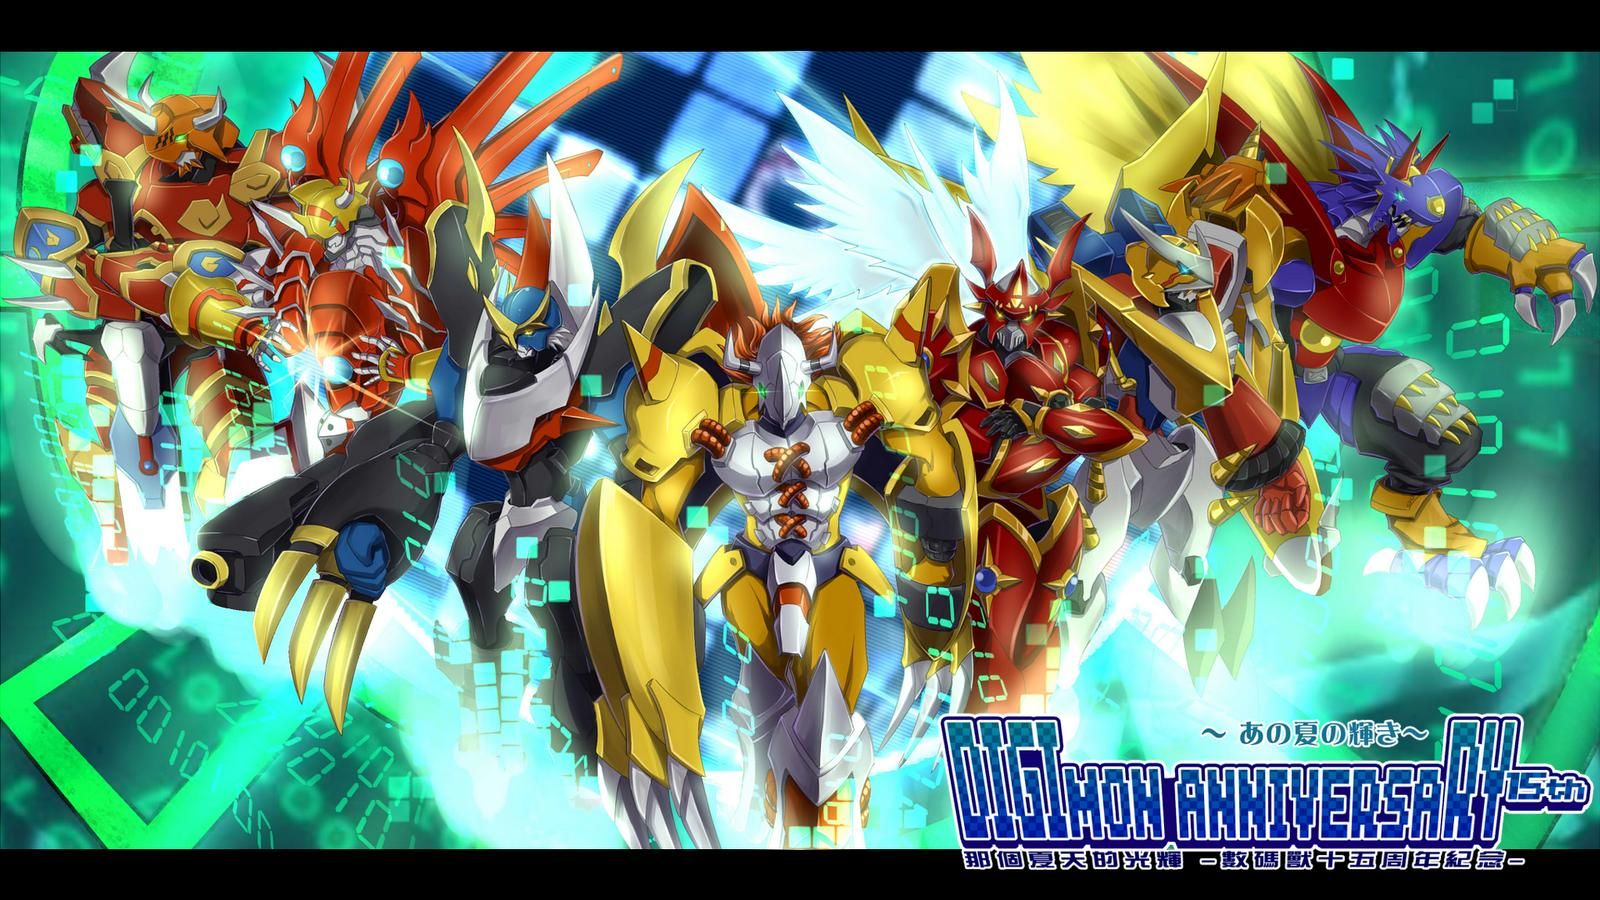 Digimon Wallpaper HQ Definition Digimon Backgrounds AI HD